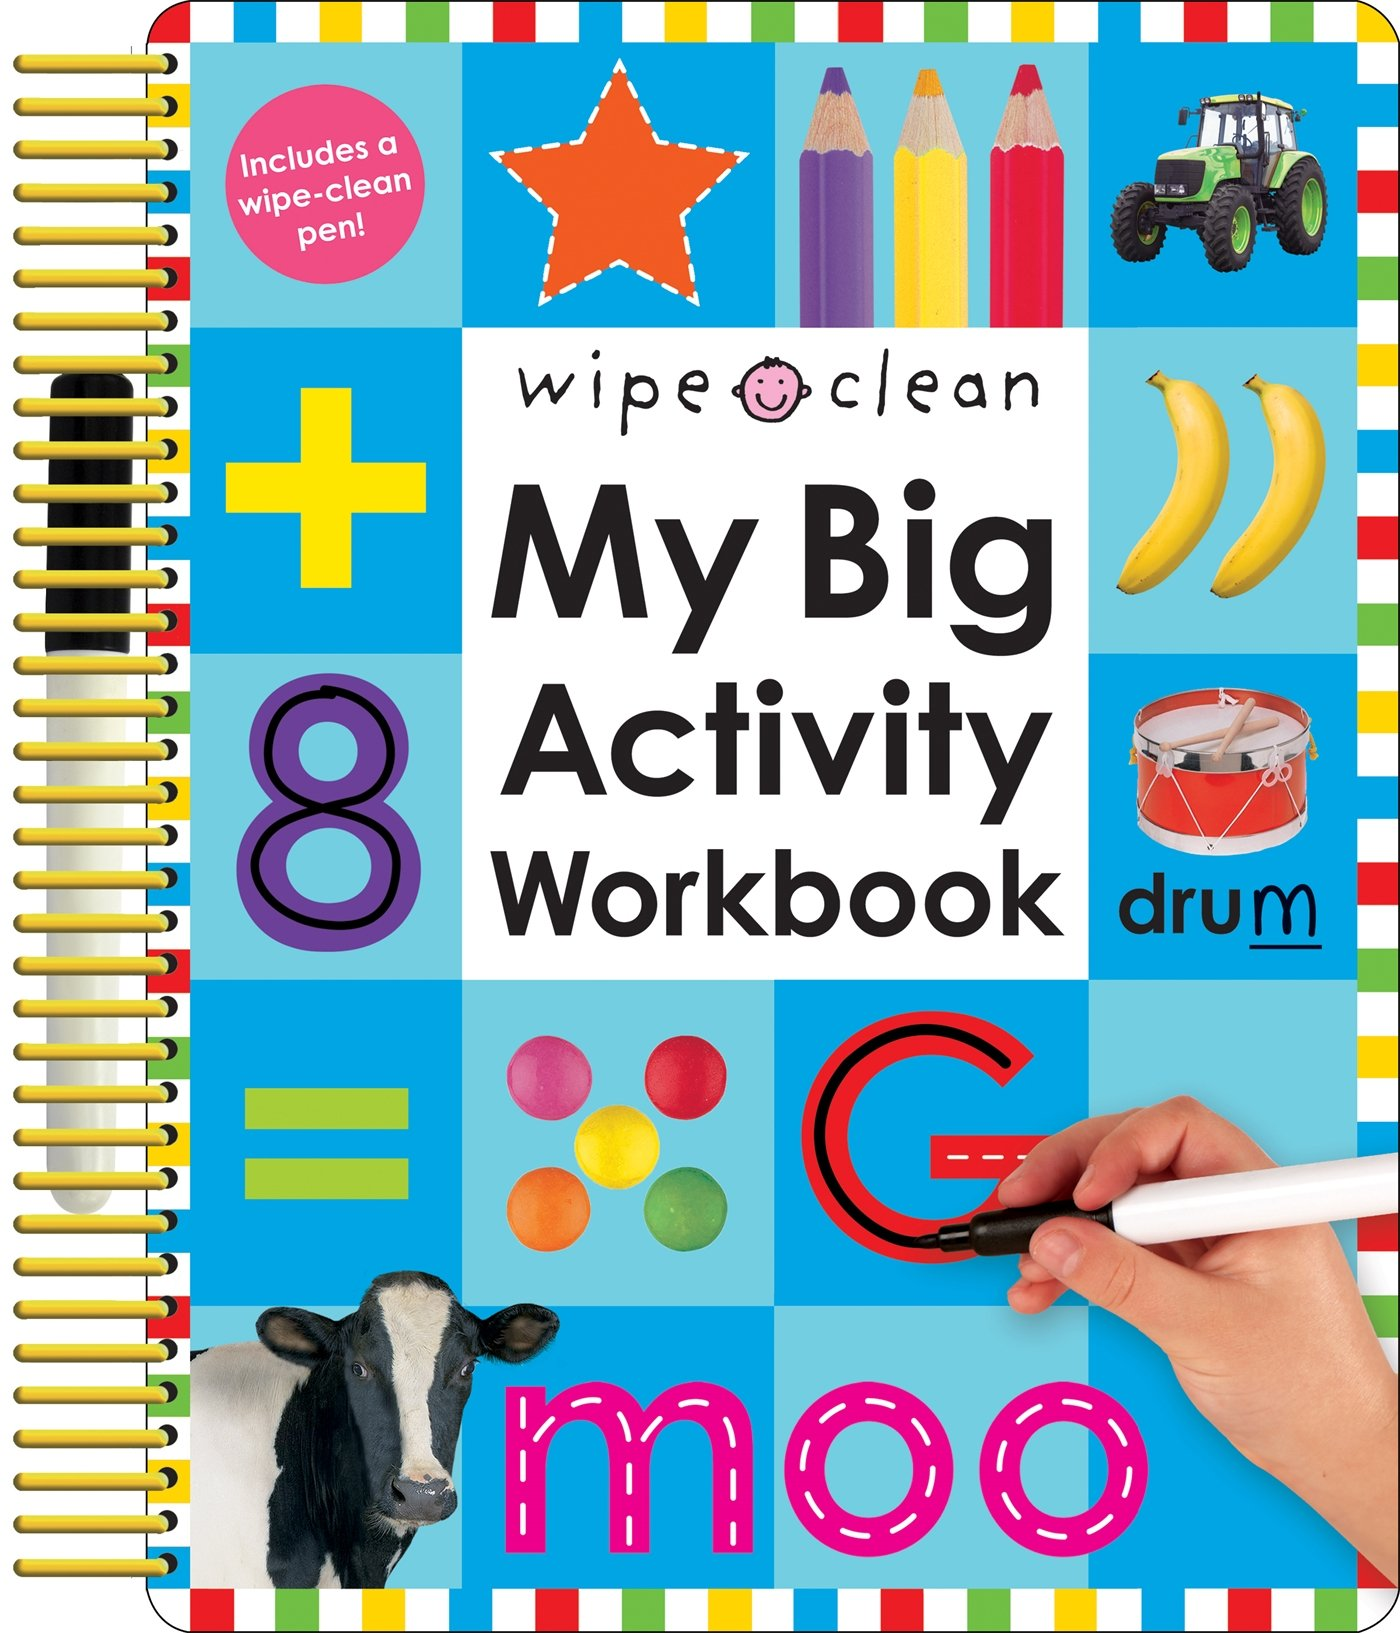 Wipe Clean Preschool Workbooks: Amazon.com